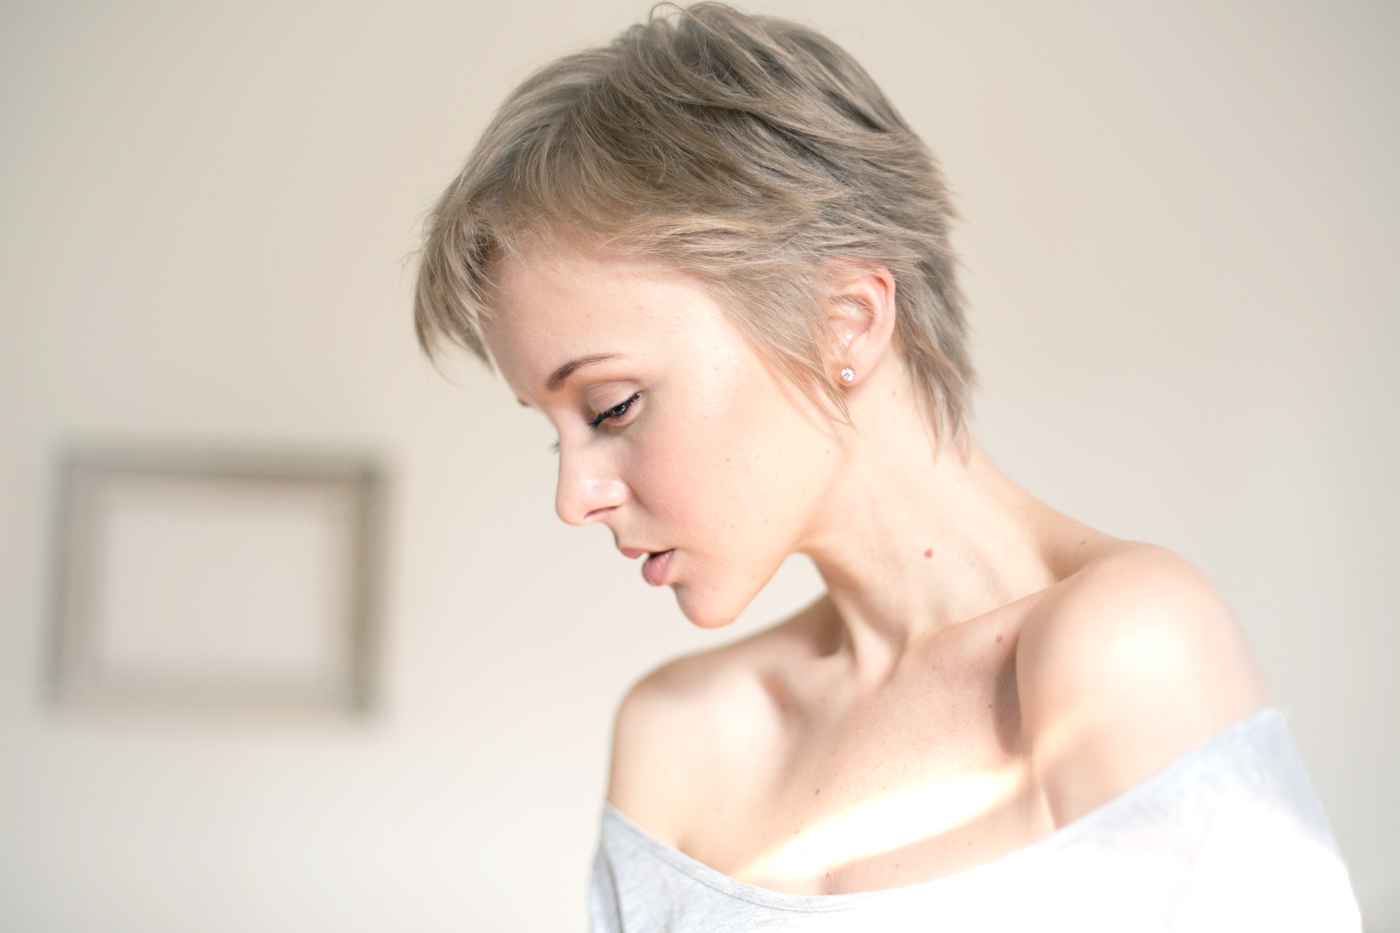 thecablook darya kamalova fashion blog street haircut pixie short hair franco curletto milano hairstyle changelikedarya-31